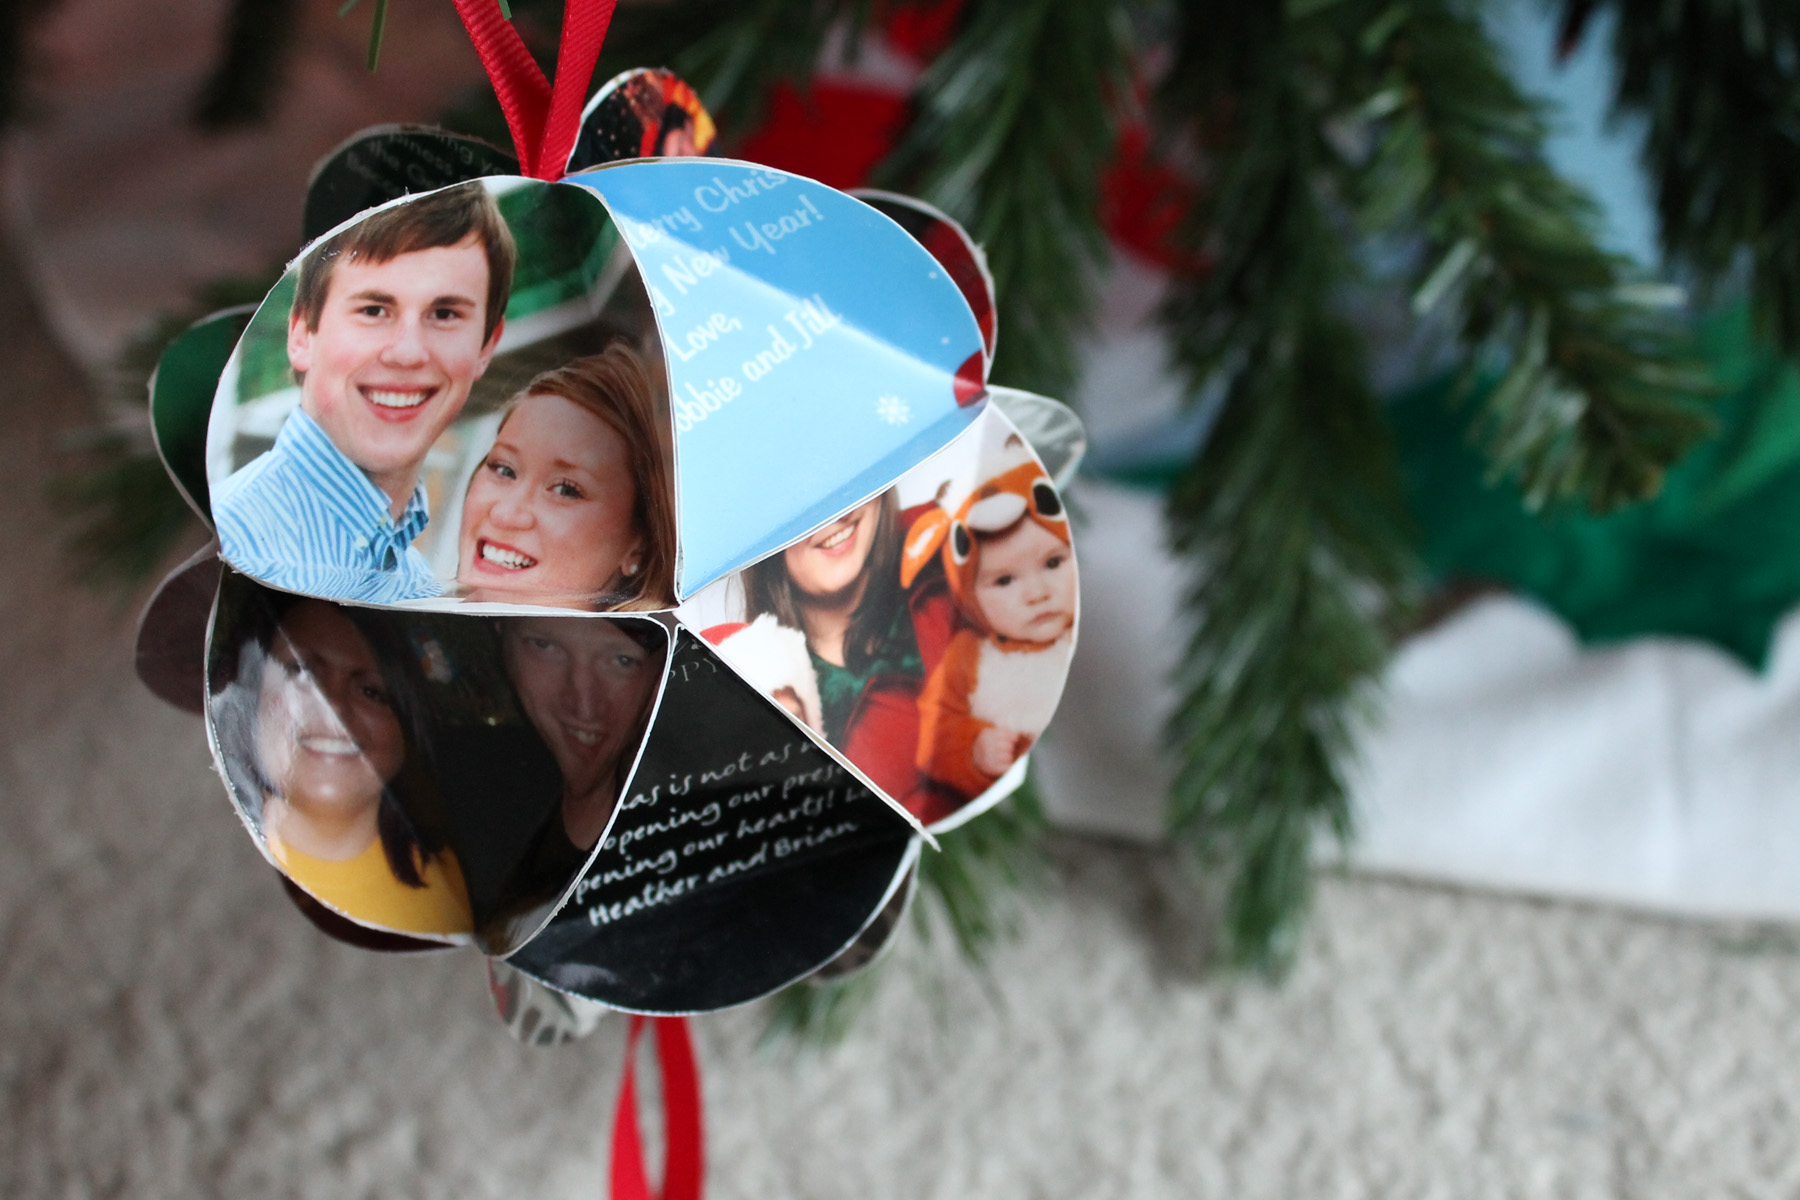 Christmas Card Ornaments - Who Arted?